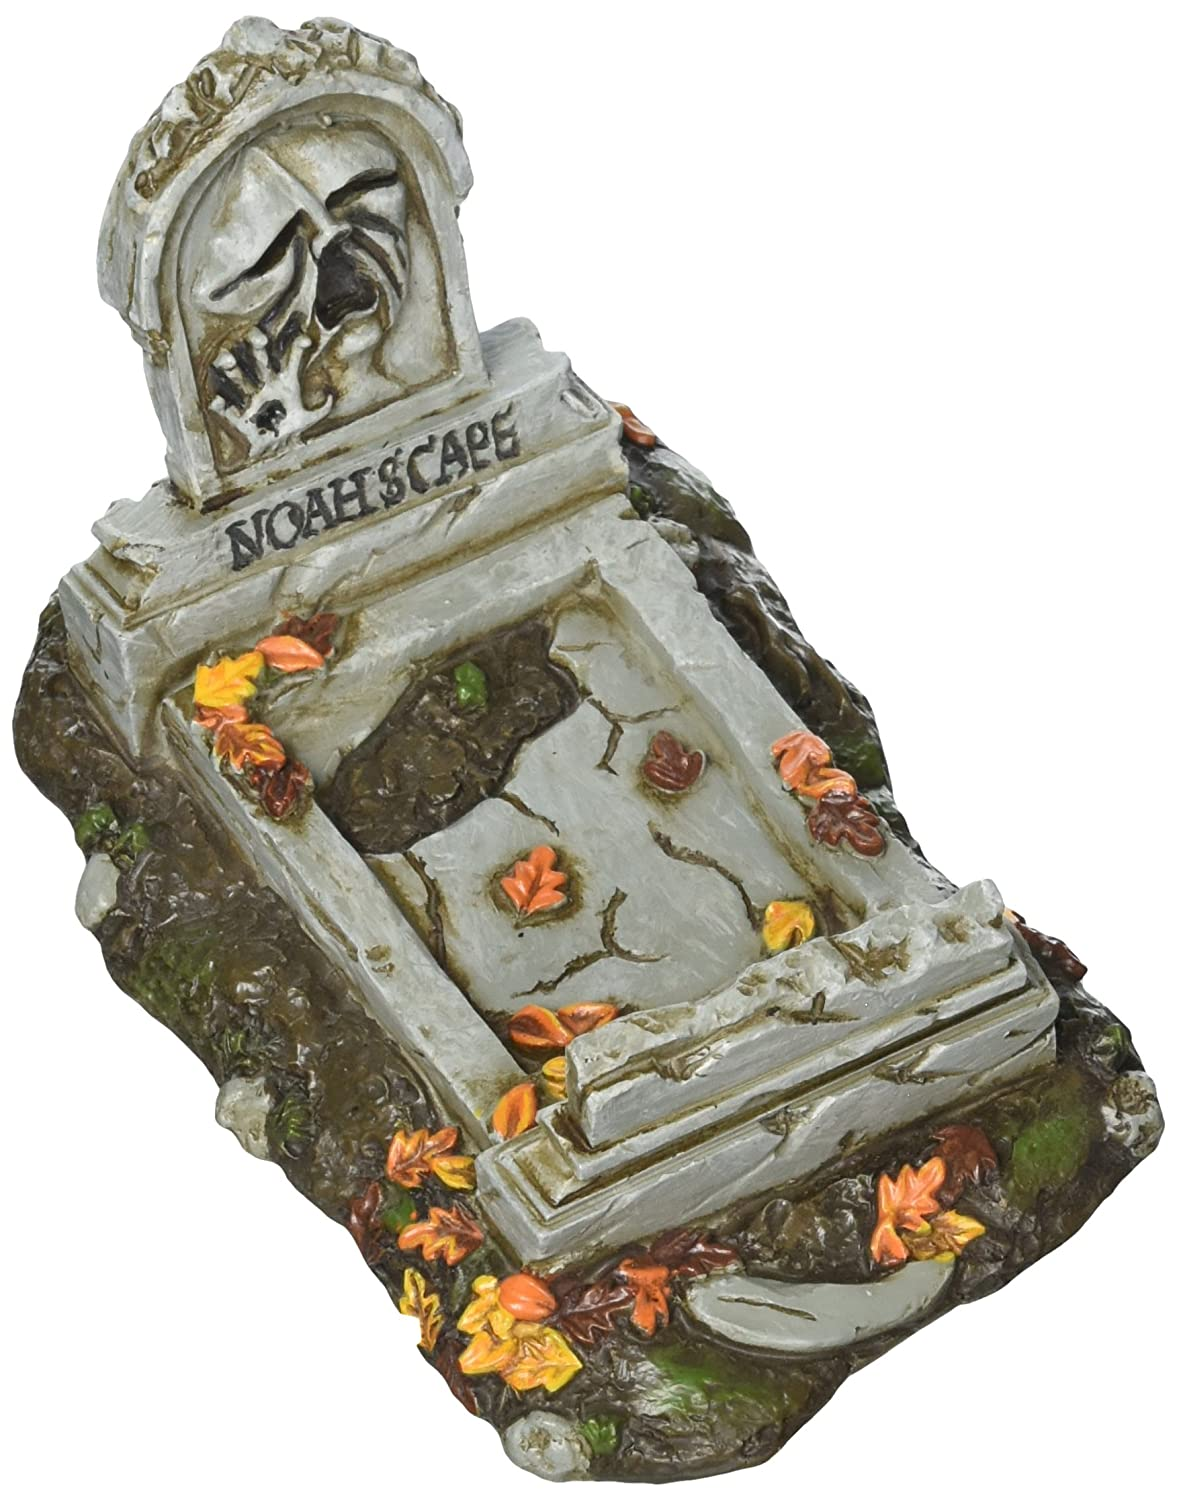 Department 56 Halloween Village Noah Scape Grave Accessory 2.5 In 4054255